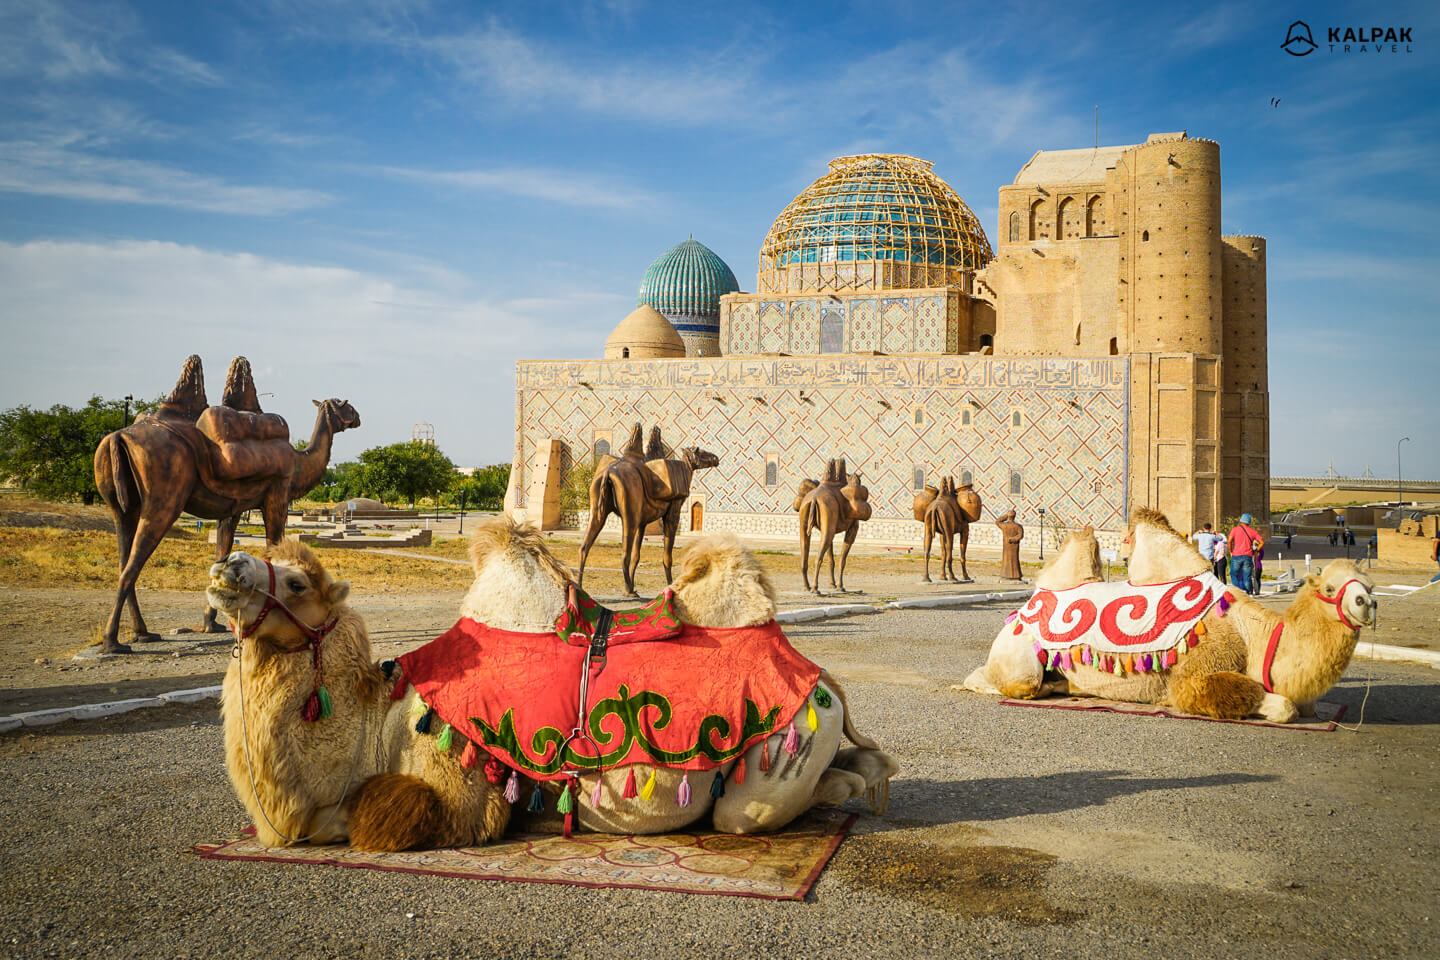 Turkistan mausoleum with camels like in Silk Road times